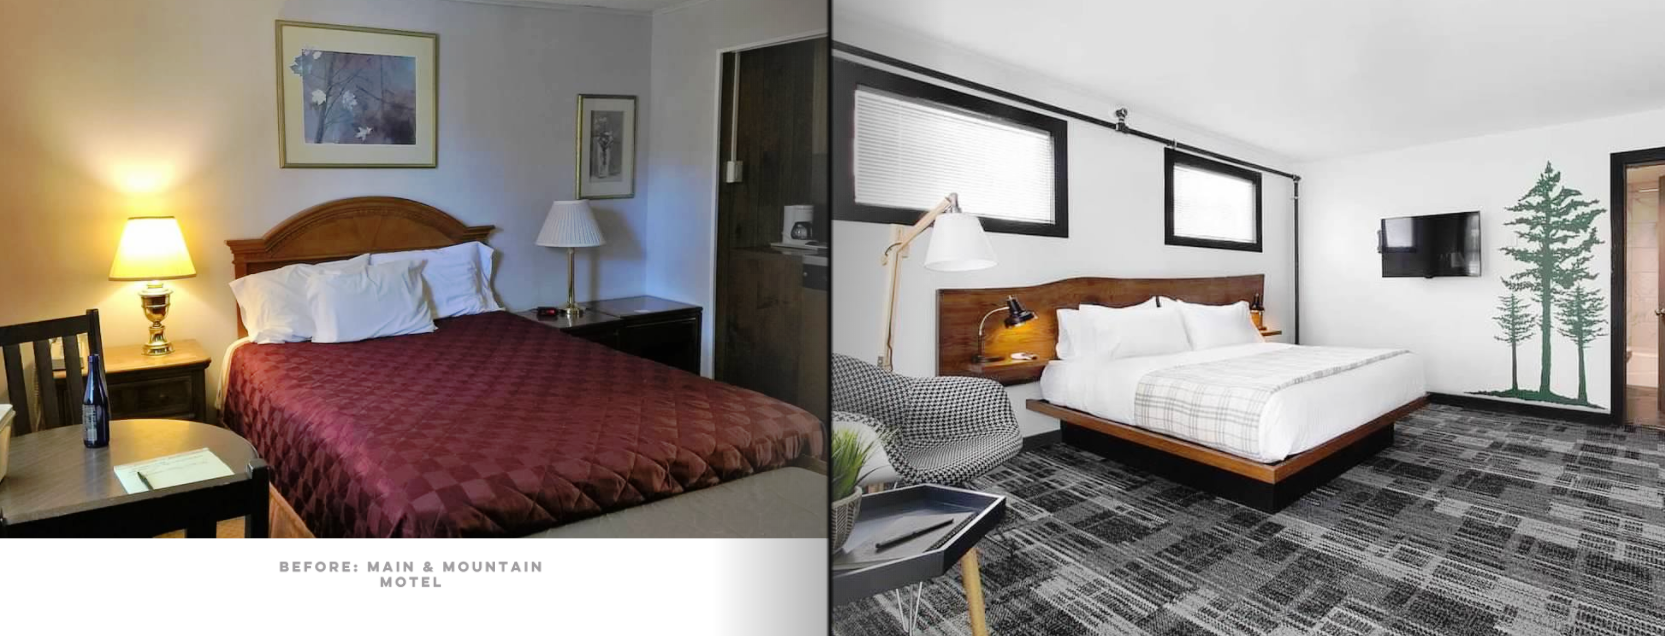 motel guest room makeover now boutique motel and bar interior design by joanne palmisano.png